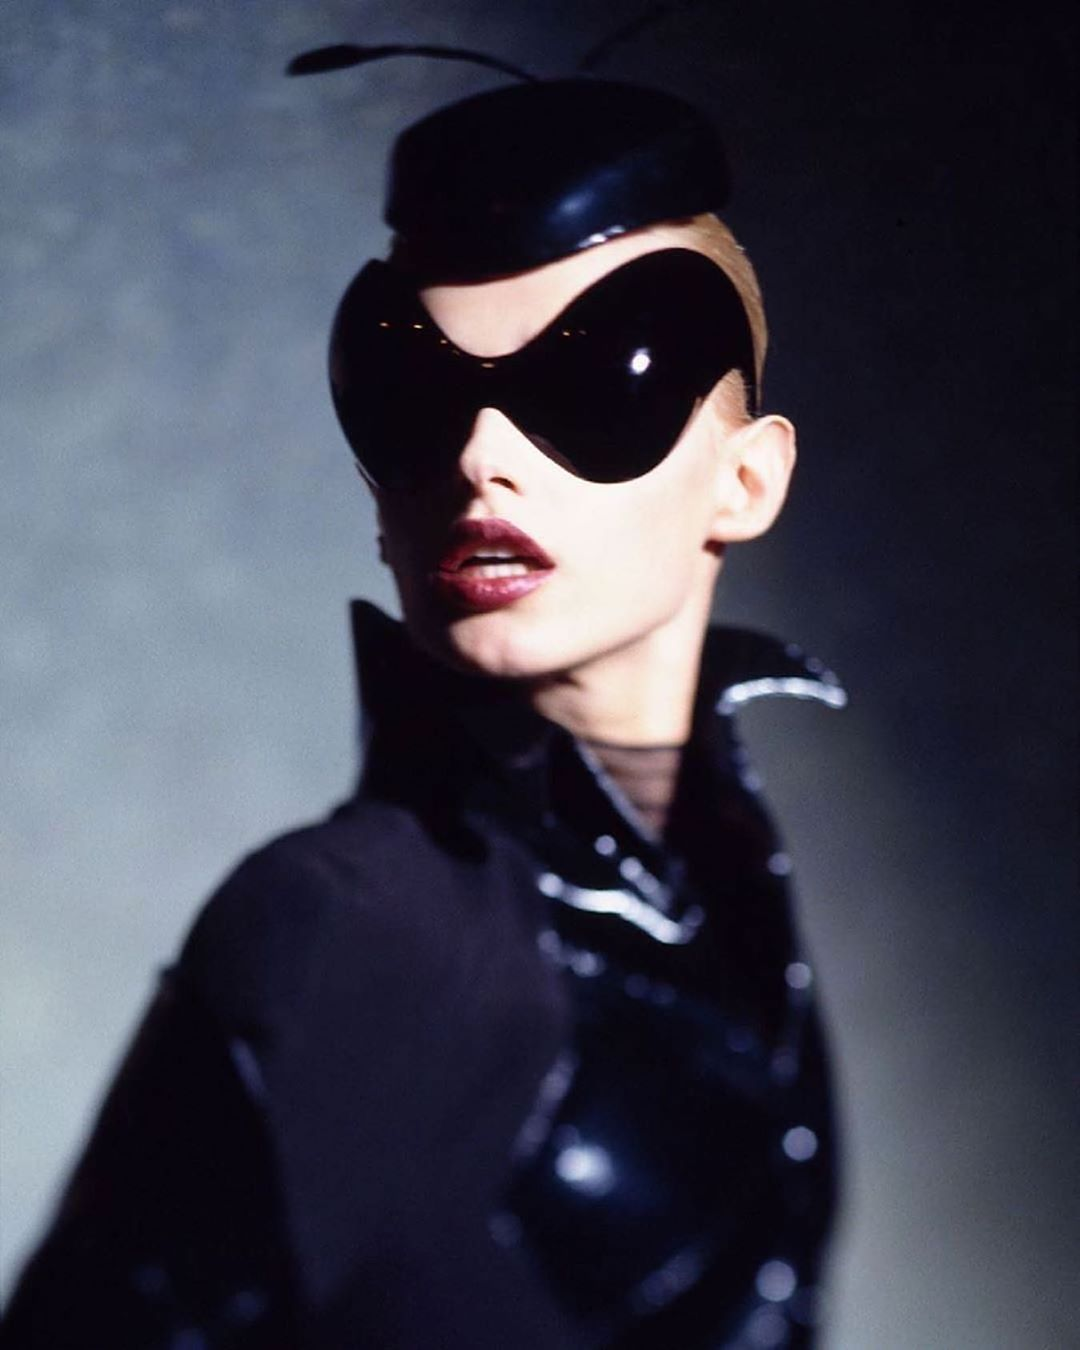 Jean Baptiste Rougeot On Instagram Saturday Incognito 1997 Muglerized Ant Pic By The Only Dominiqueissermann In 2020 Mugler Cyberpunk Fashion Fashion